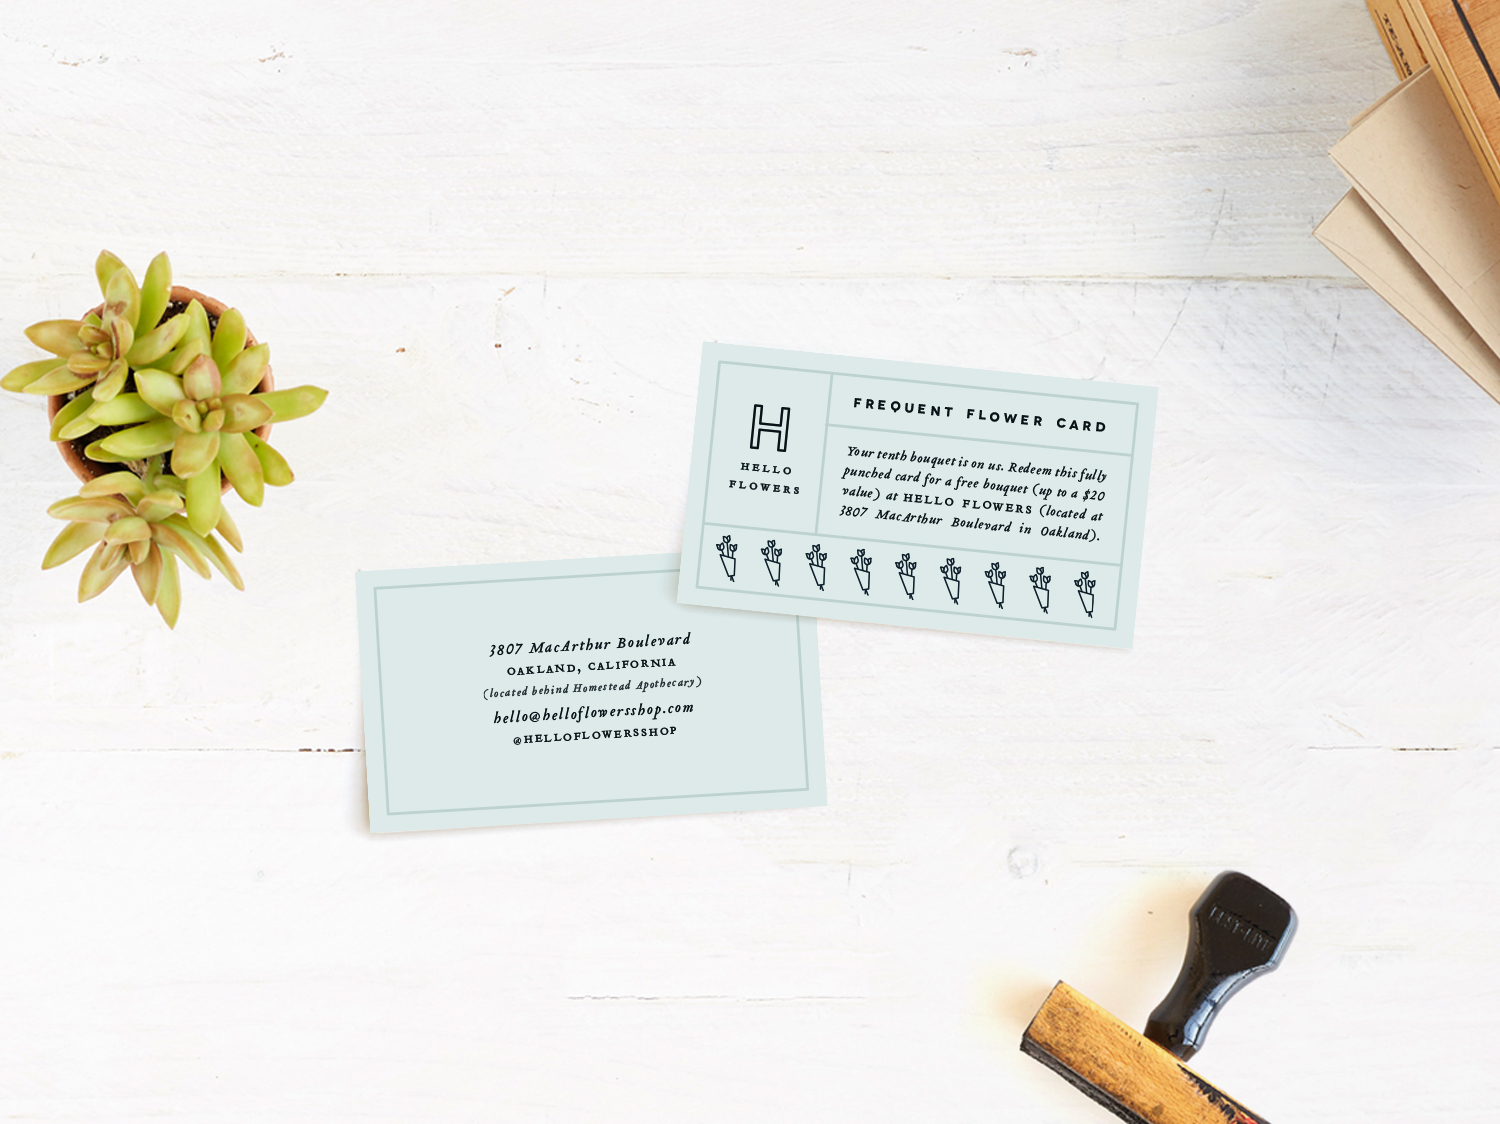 Punch card for Hello Flowers